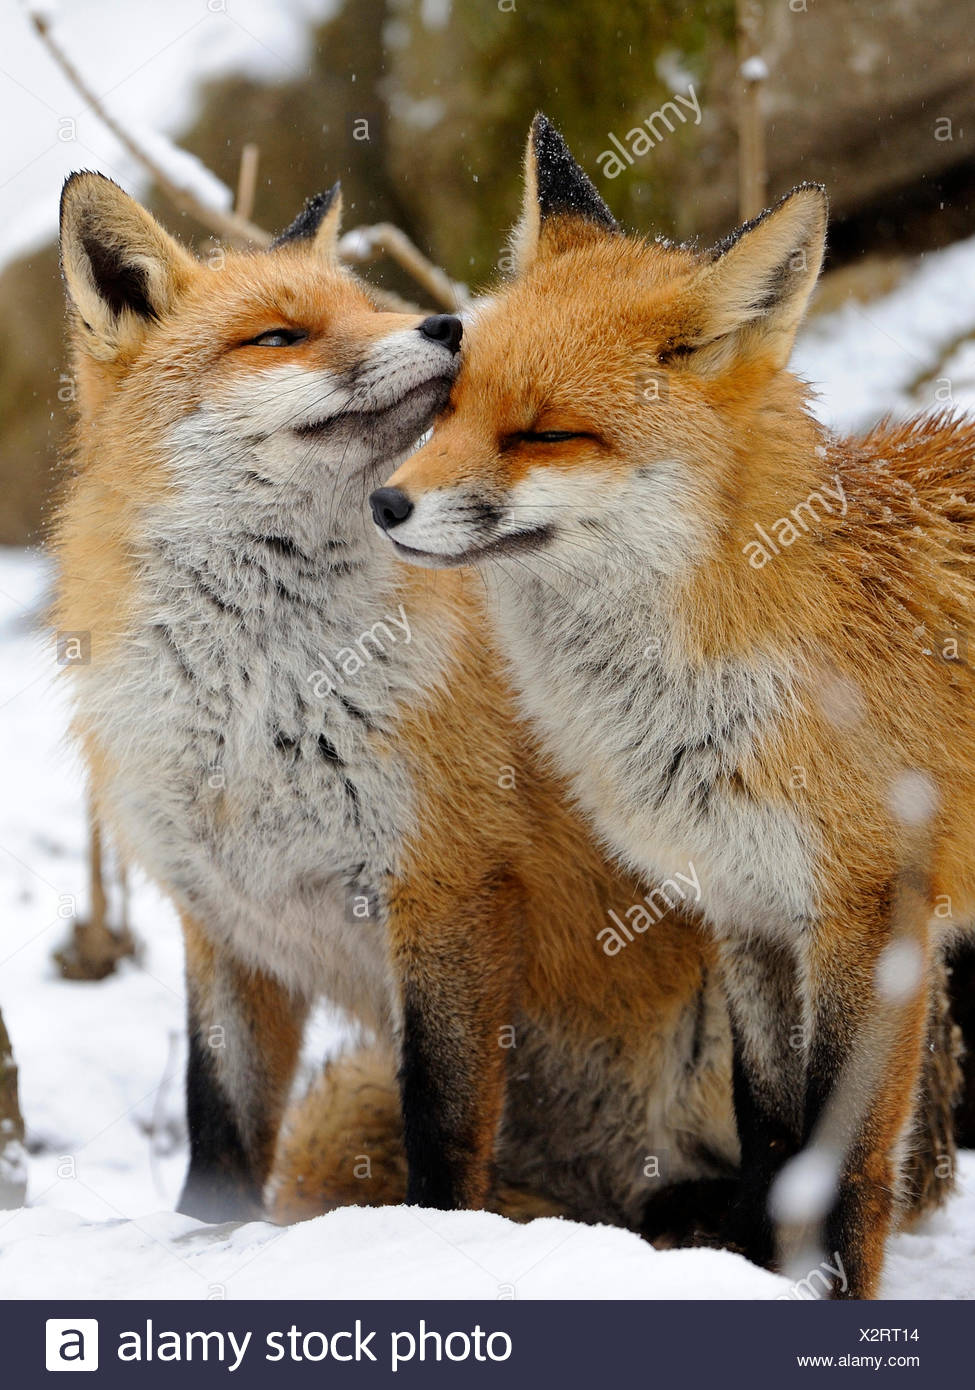 red fox (Vulpes vulpes), two foxes standing side by side in the snow caressing each other, Germany - Stock Image